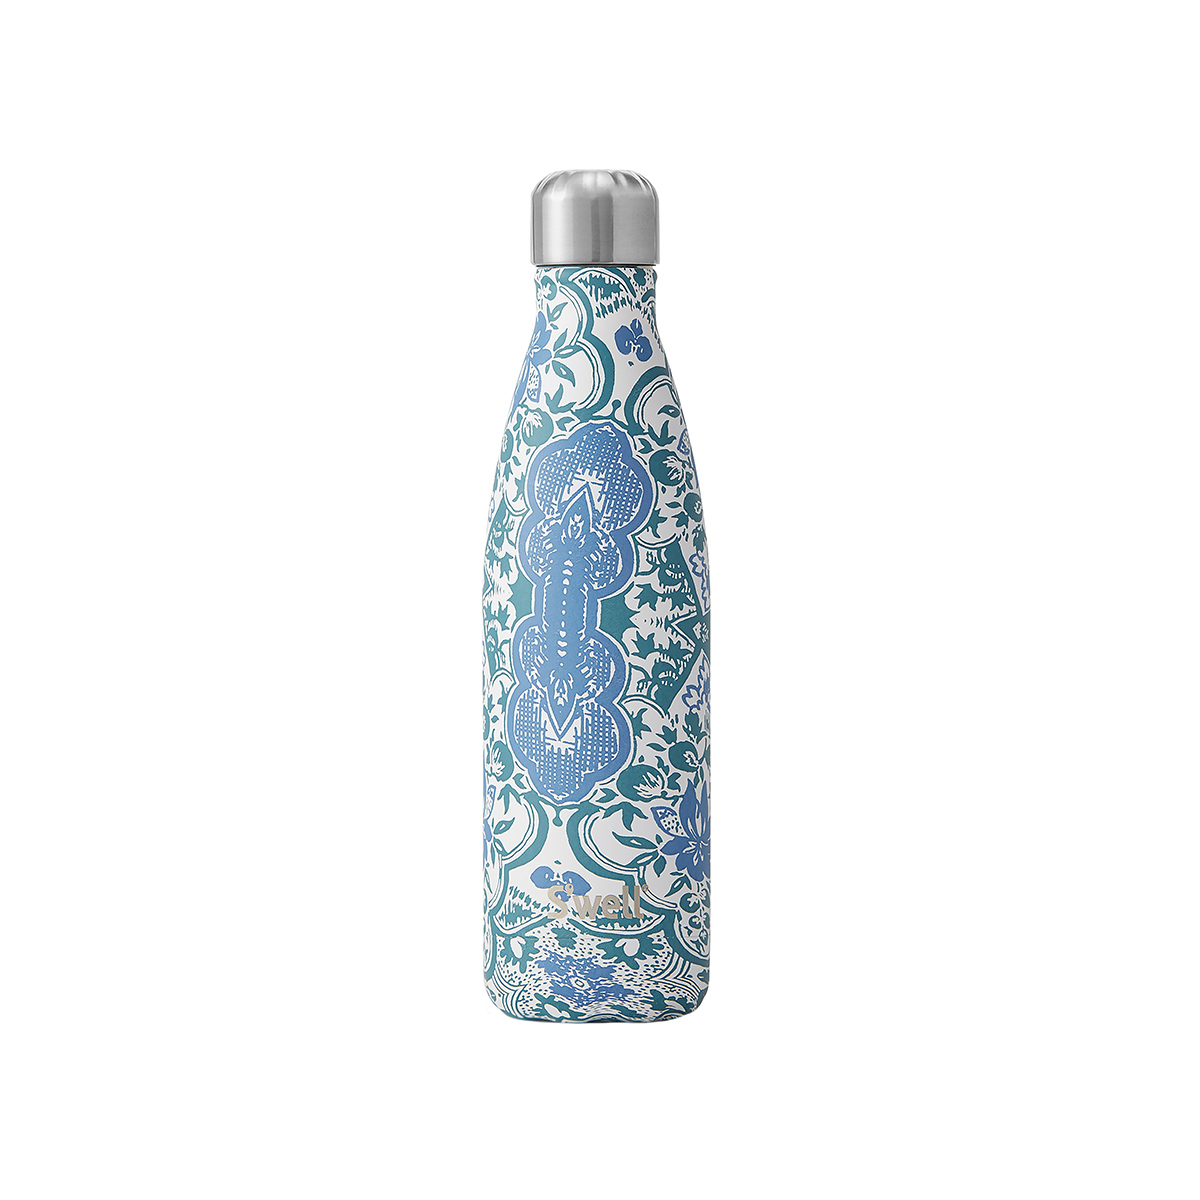 S'Well insulated water bottle (Shanti)